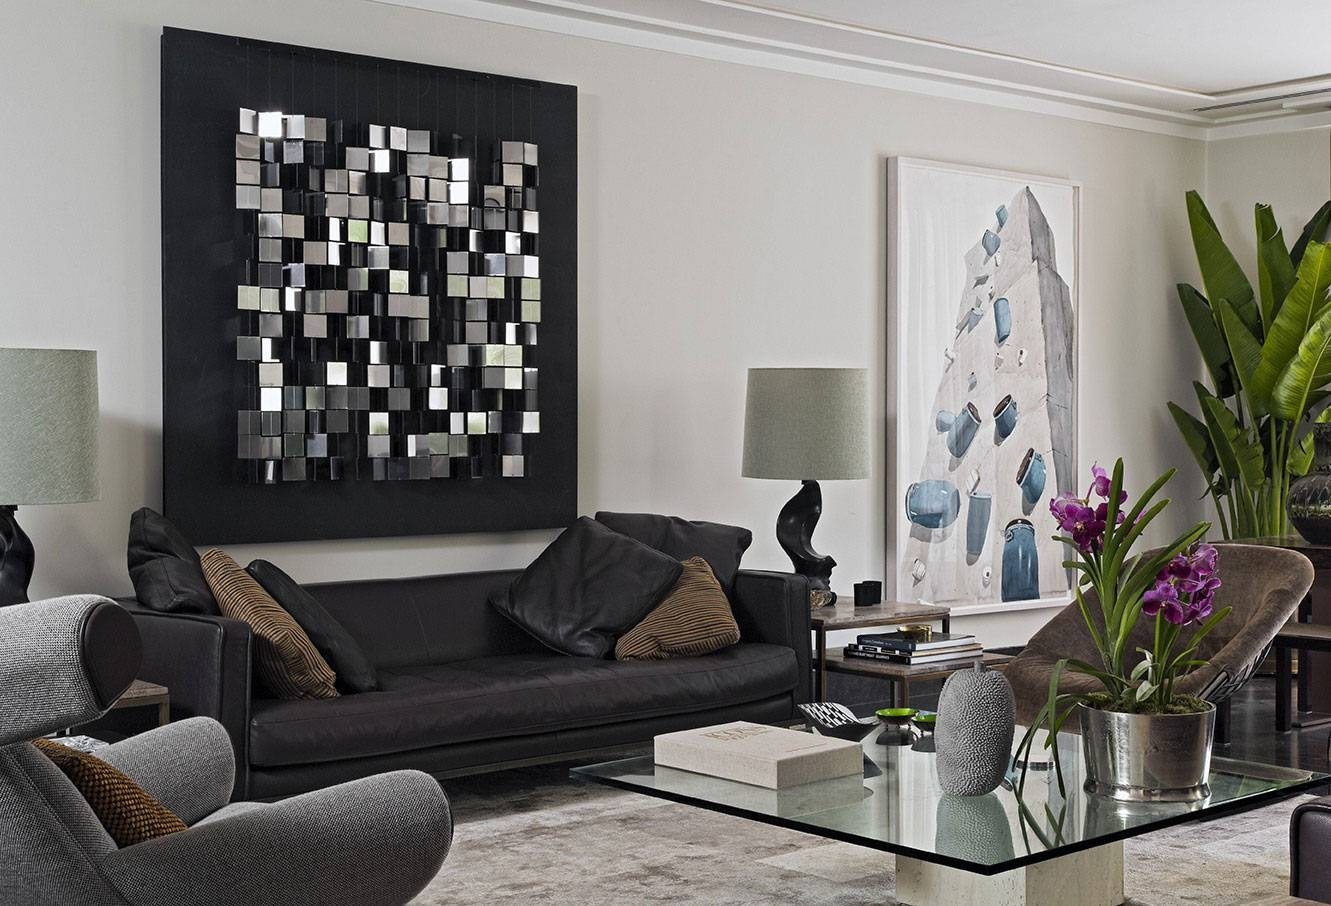 Wall Art Designs: Pictures And Painting Decorating With Wall Art Throughout Current Cool Modern Wall Art (View 20 of 24)